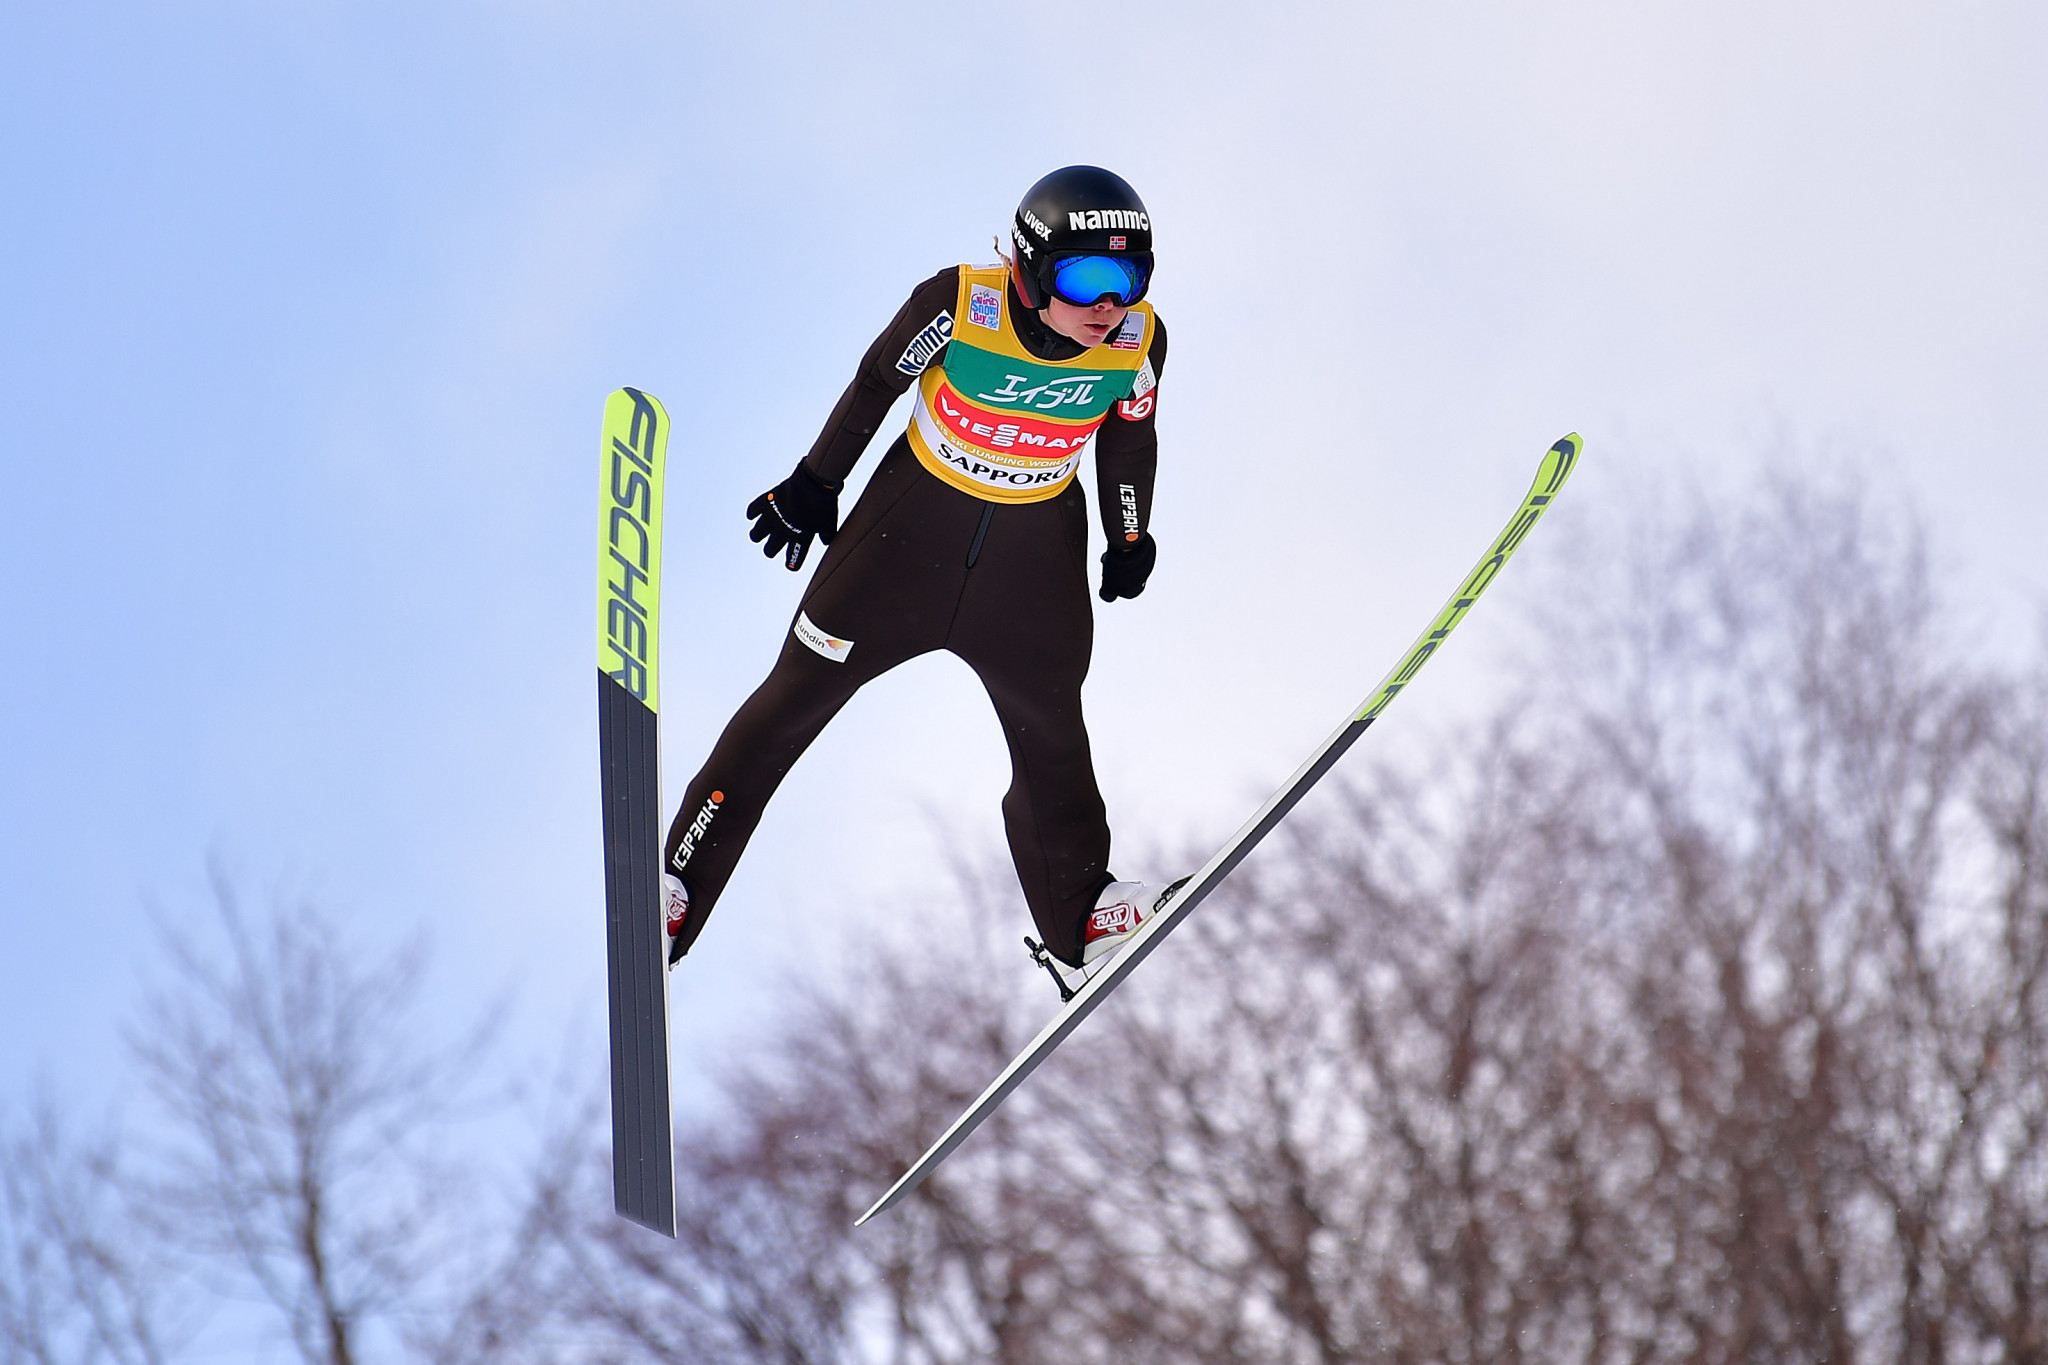 Lundby to defend title at FIS Ski Jumping World Cup event in Zao